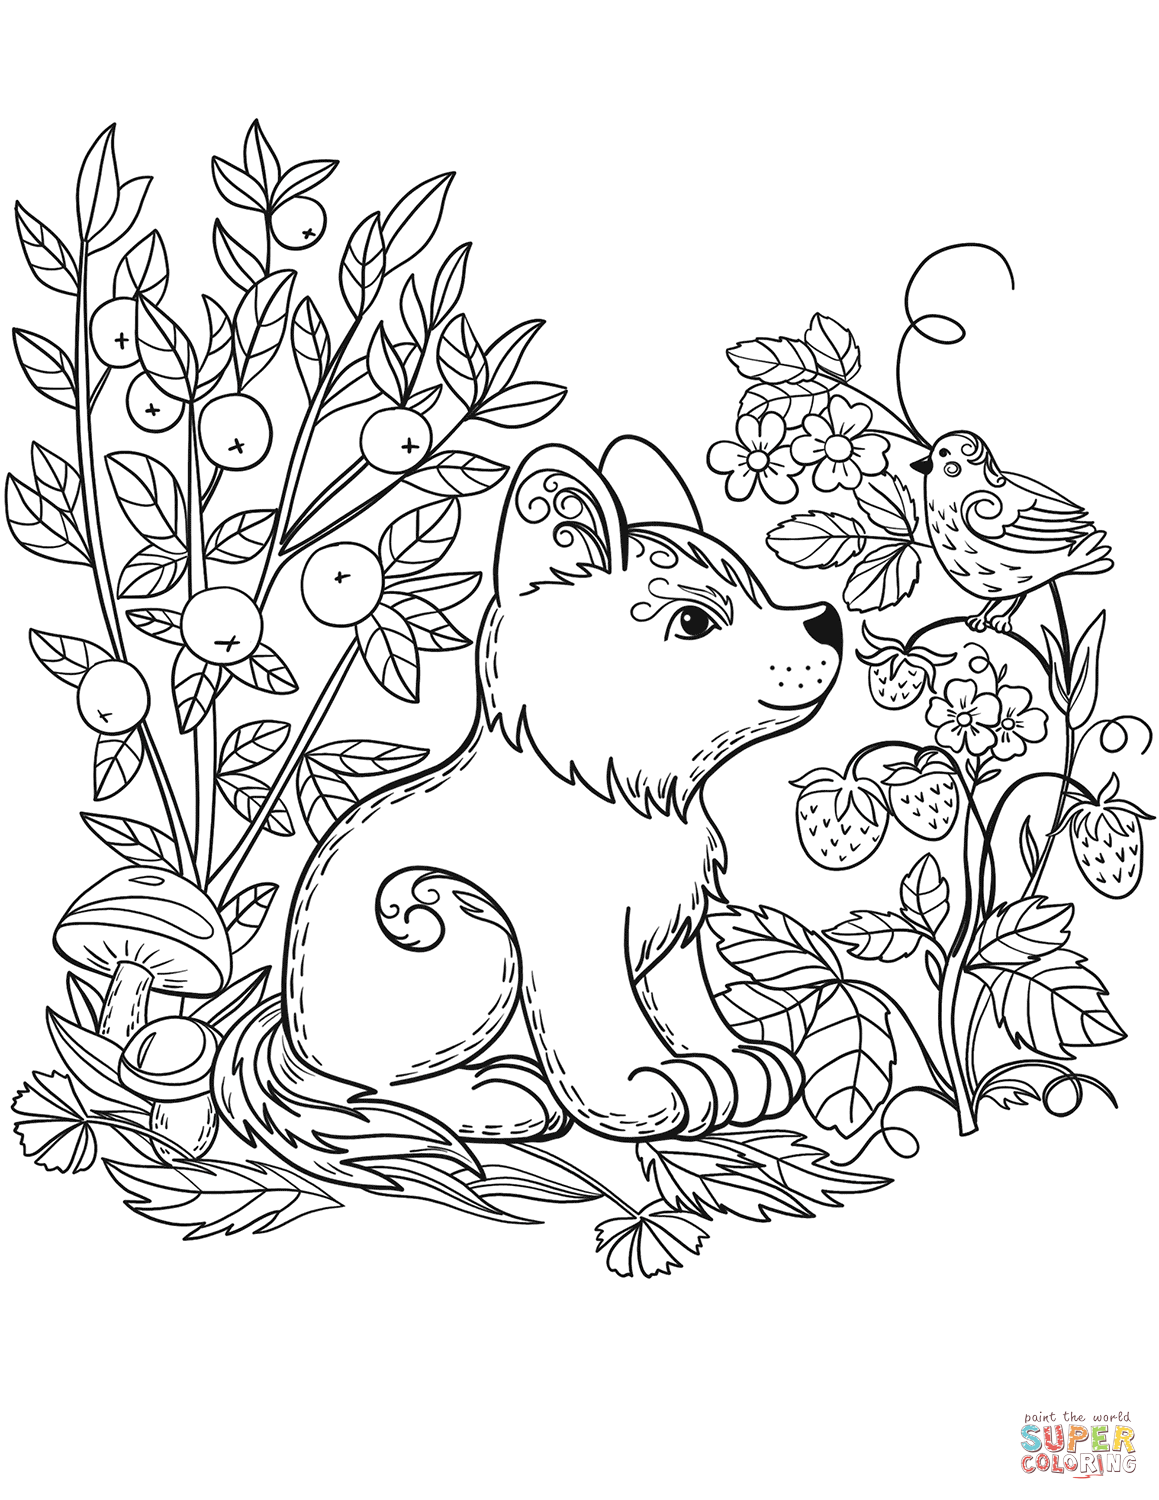 woodland animal coloring pages woodland forest animals coloring pages get coloring pages pages animal coloring woodland